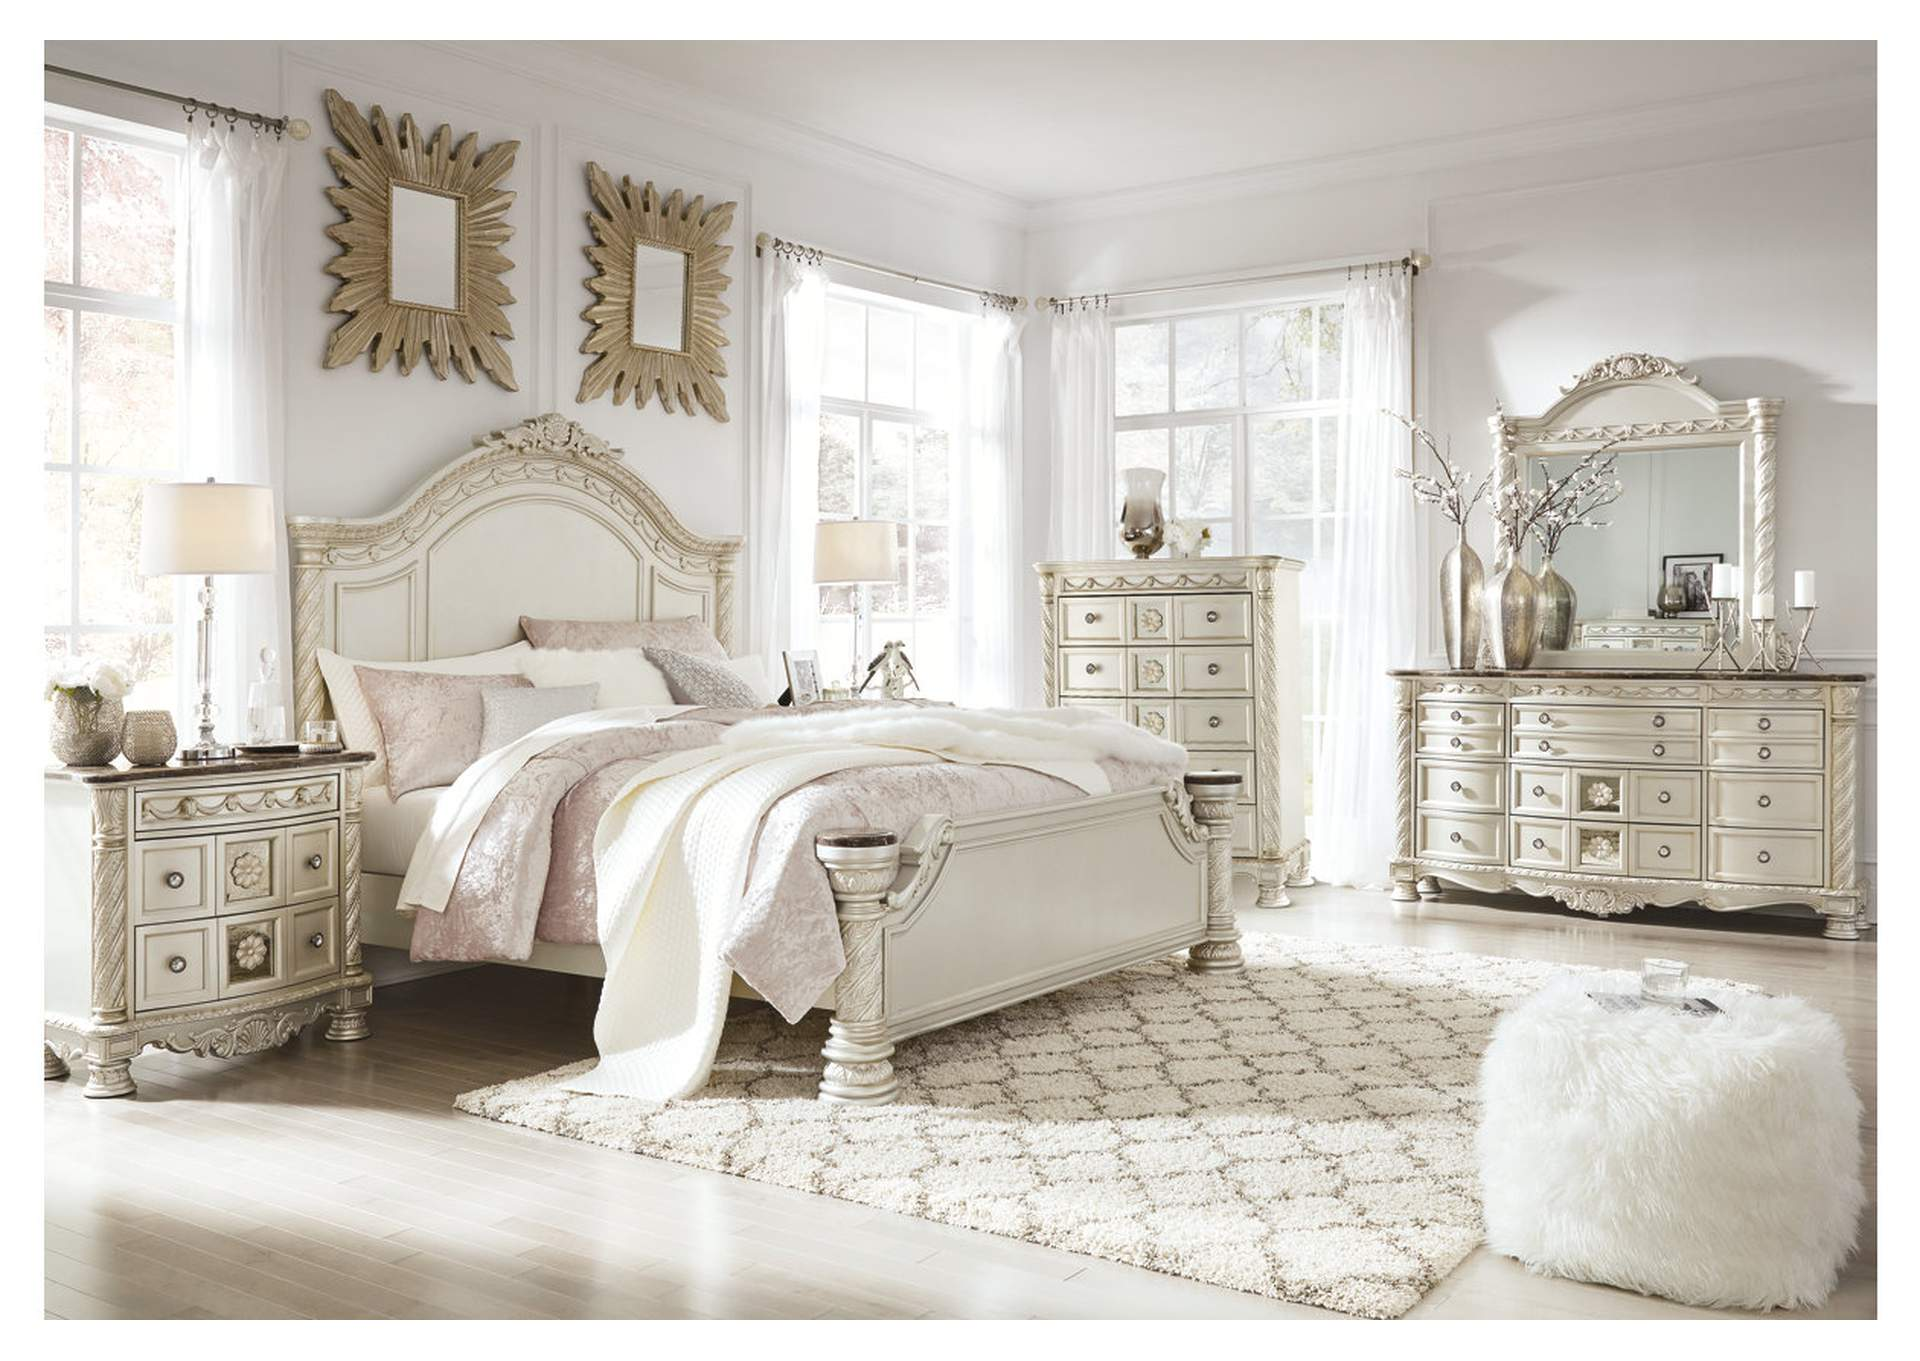 Cassimore Pearl Silver King Panel Bed w/Dresser, Mirror, Drawer Chest & Nightstand,Signature Design By Ashley